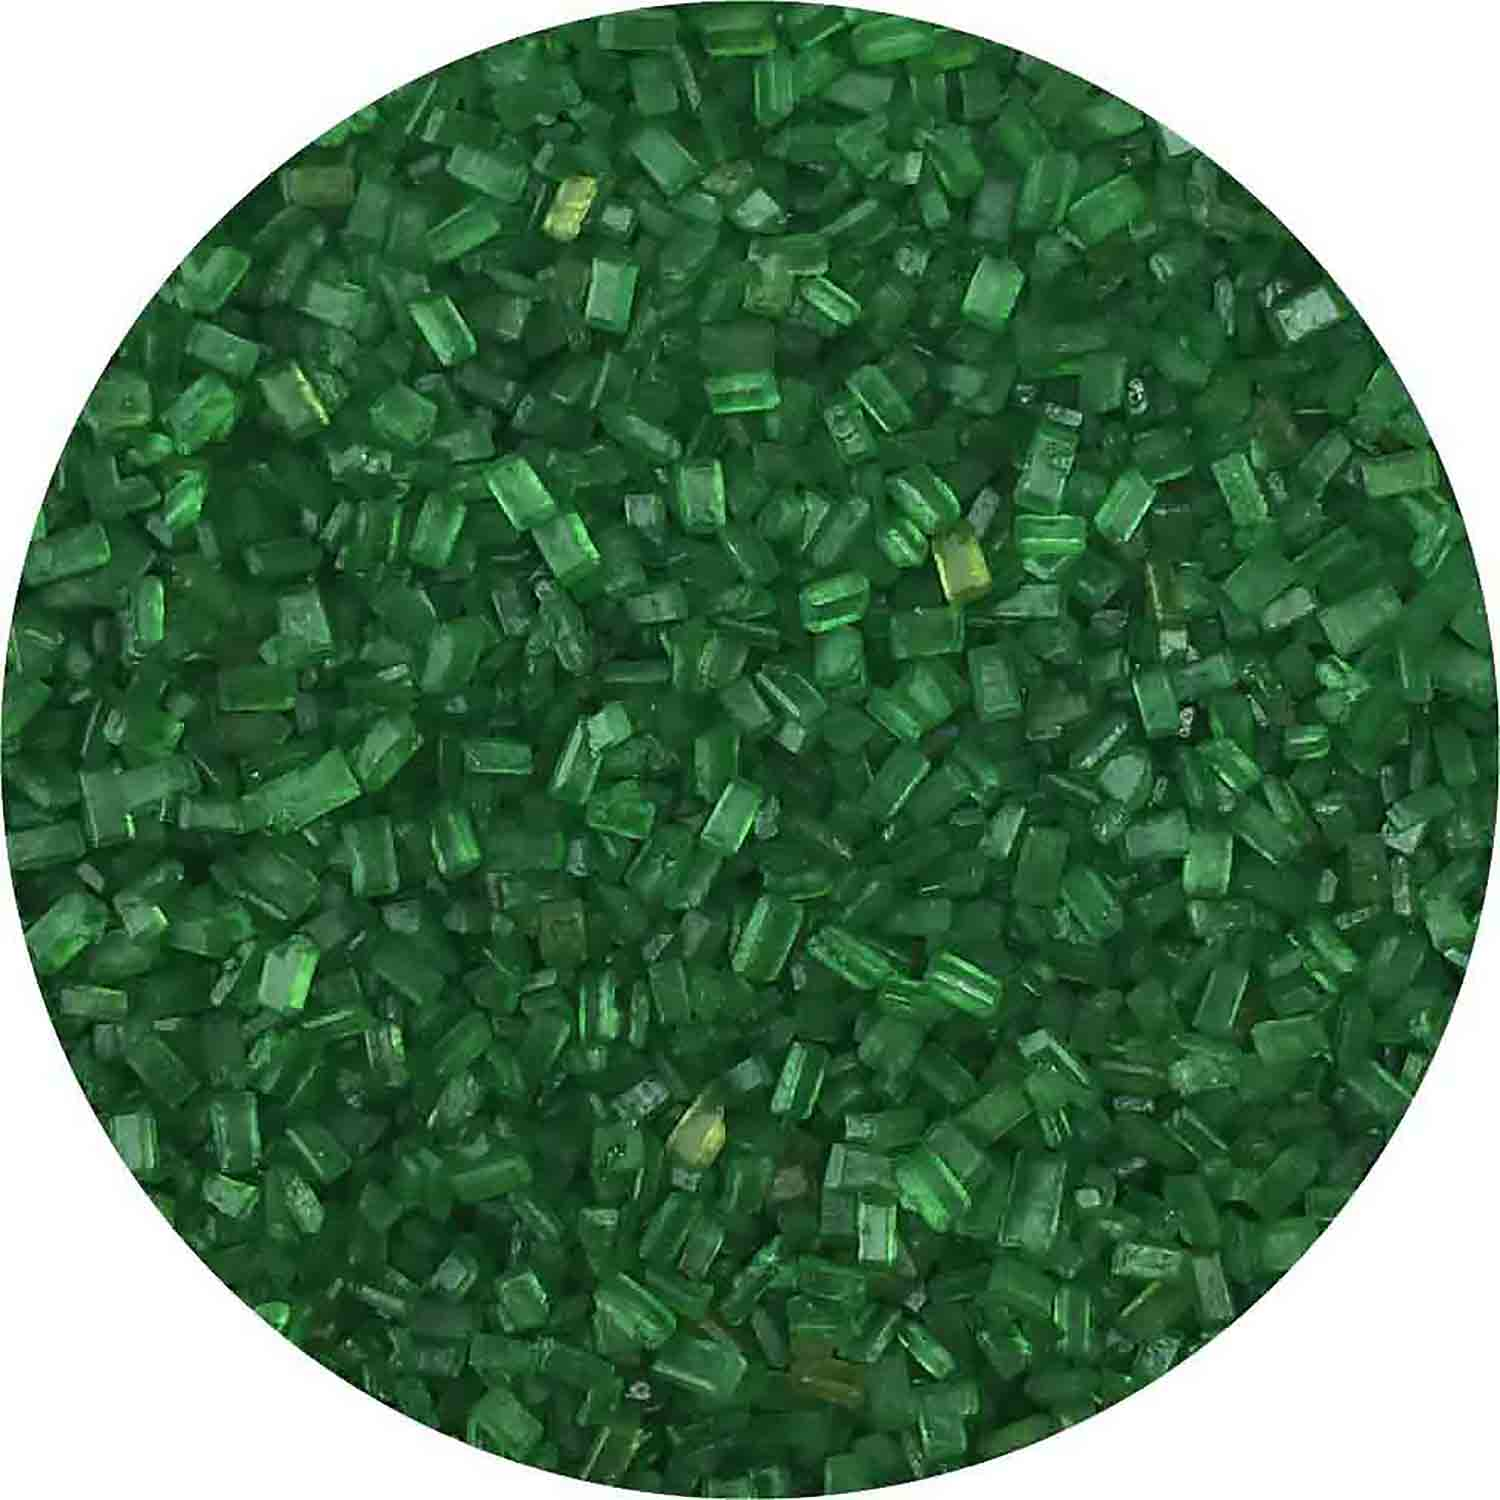 Green Coarse Sugar / Sugar Crystals